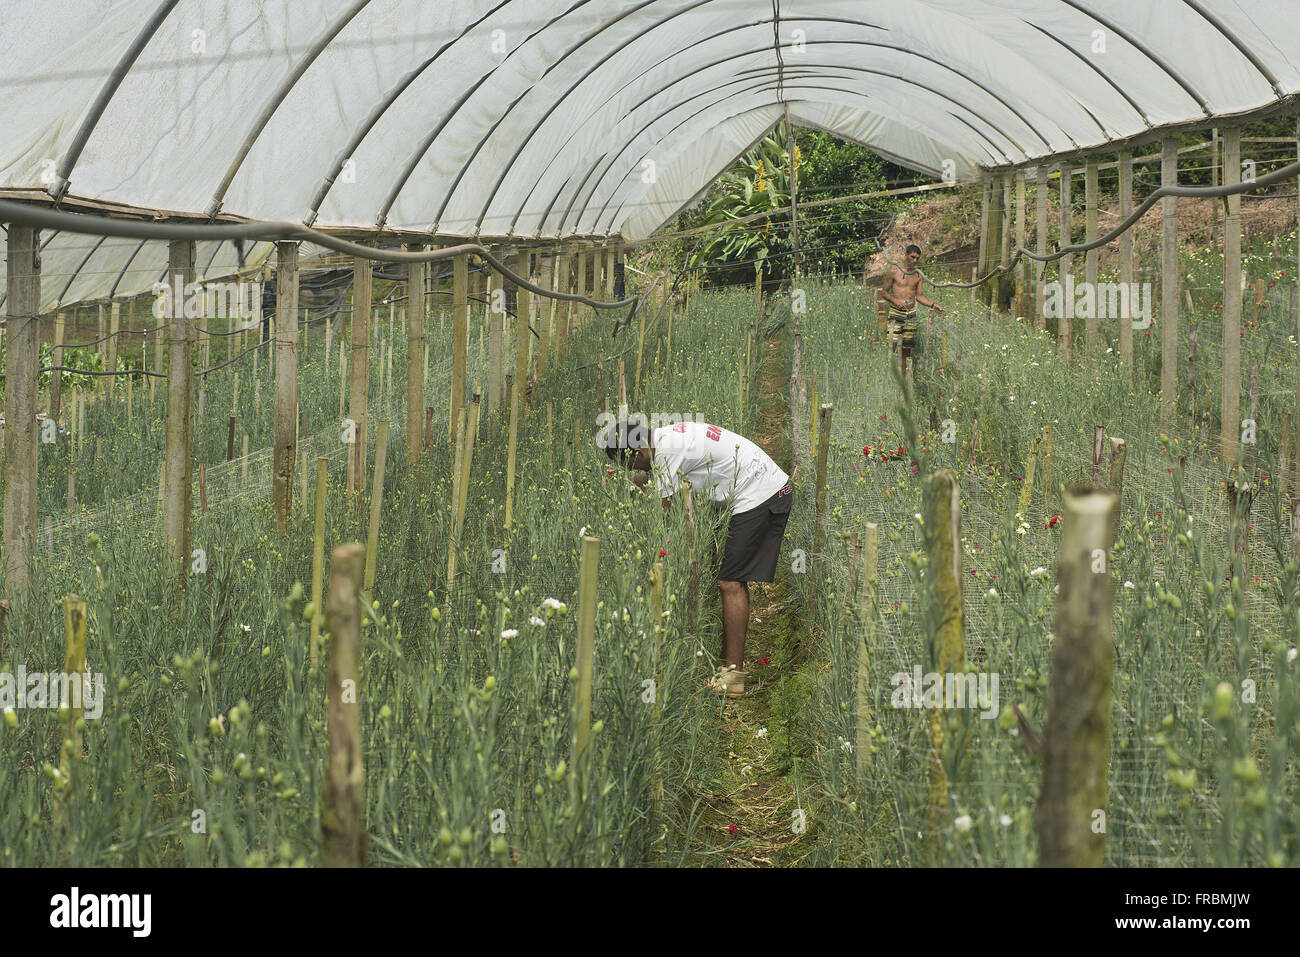 Plantation of carnations in greenhouses in Gale neighborhood - Stock Image